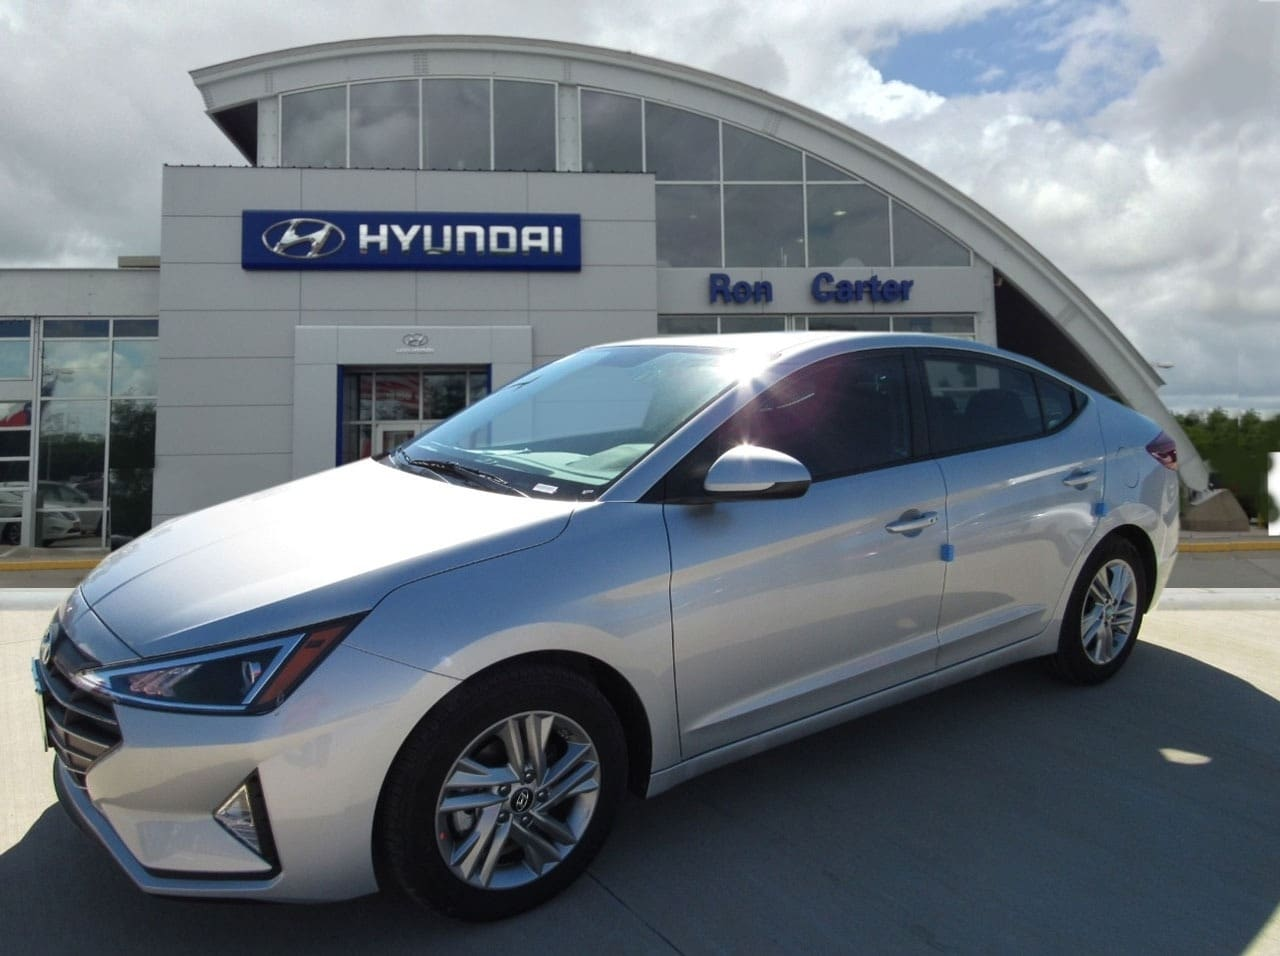 Ron Carter Hyundai >> New Featured Vehicles Ron Carter Hyundai